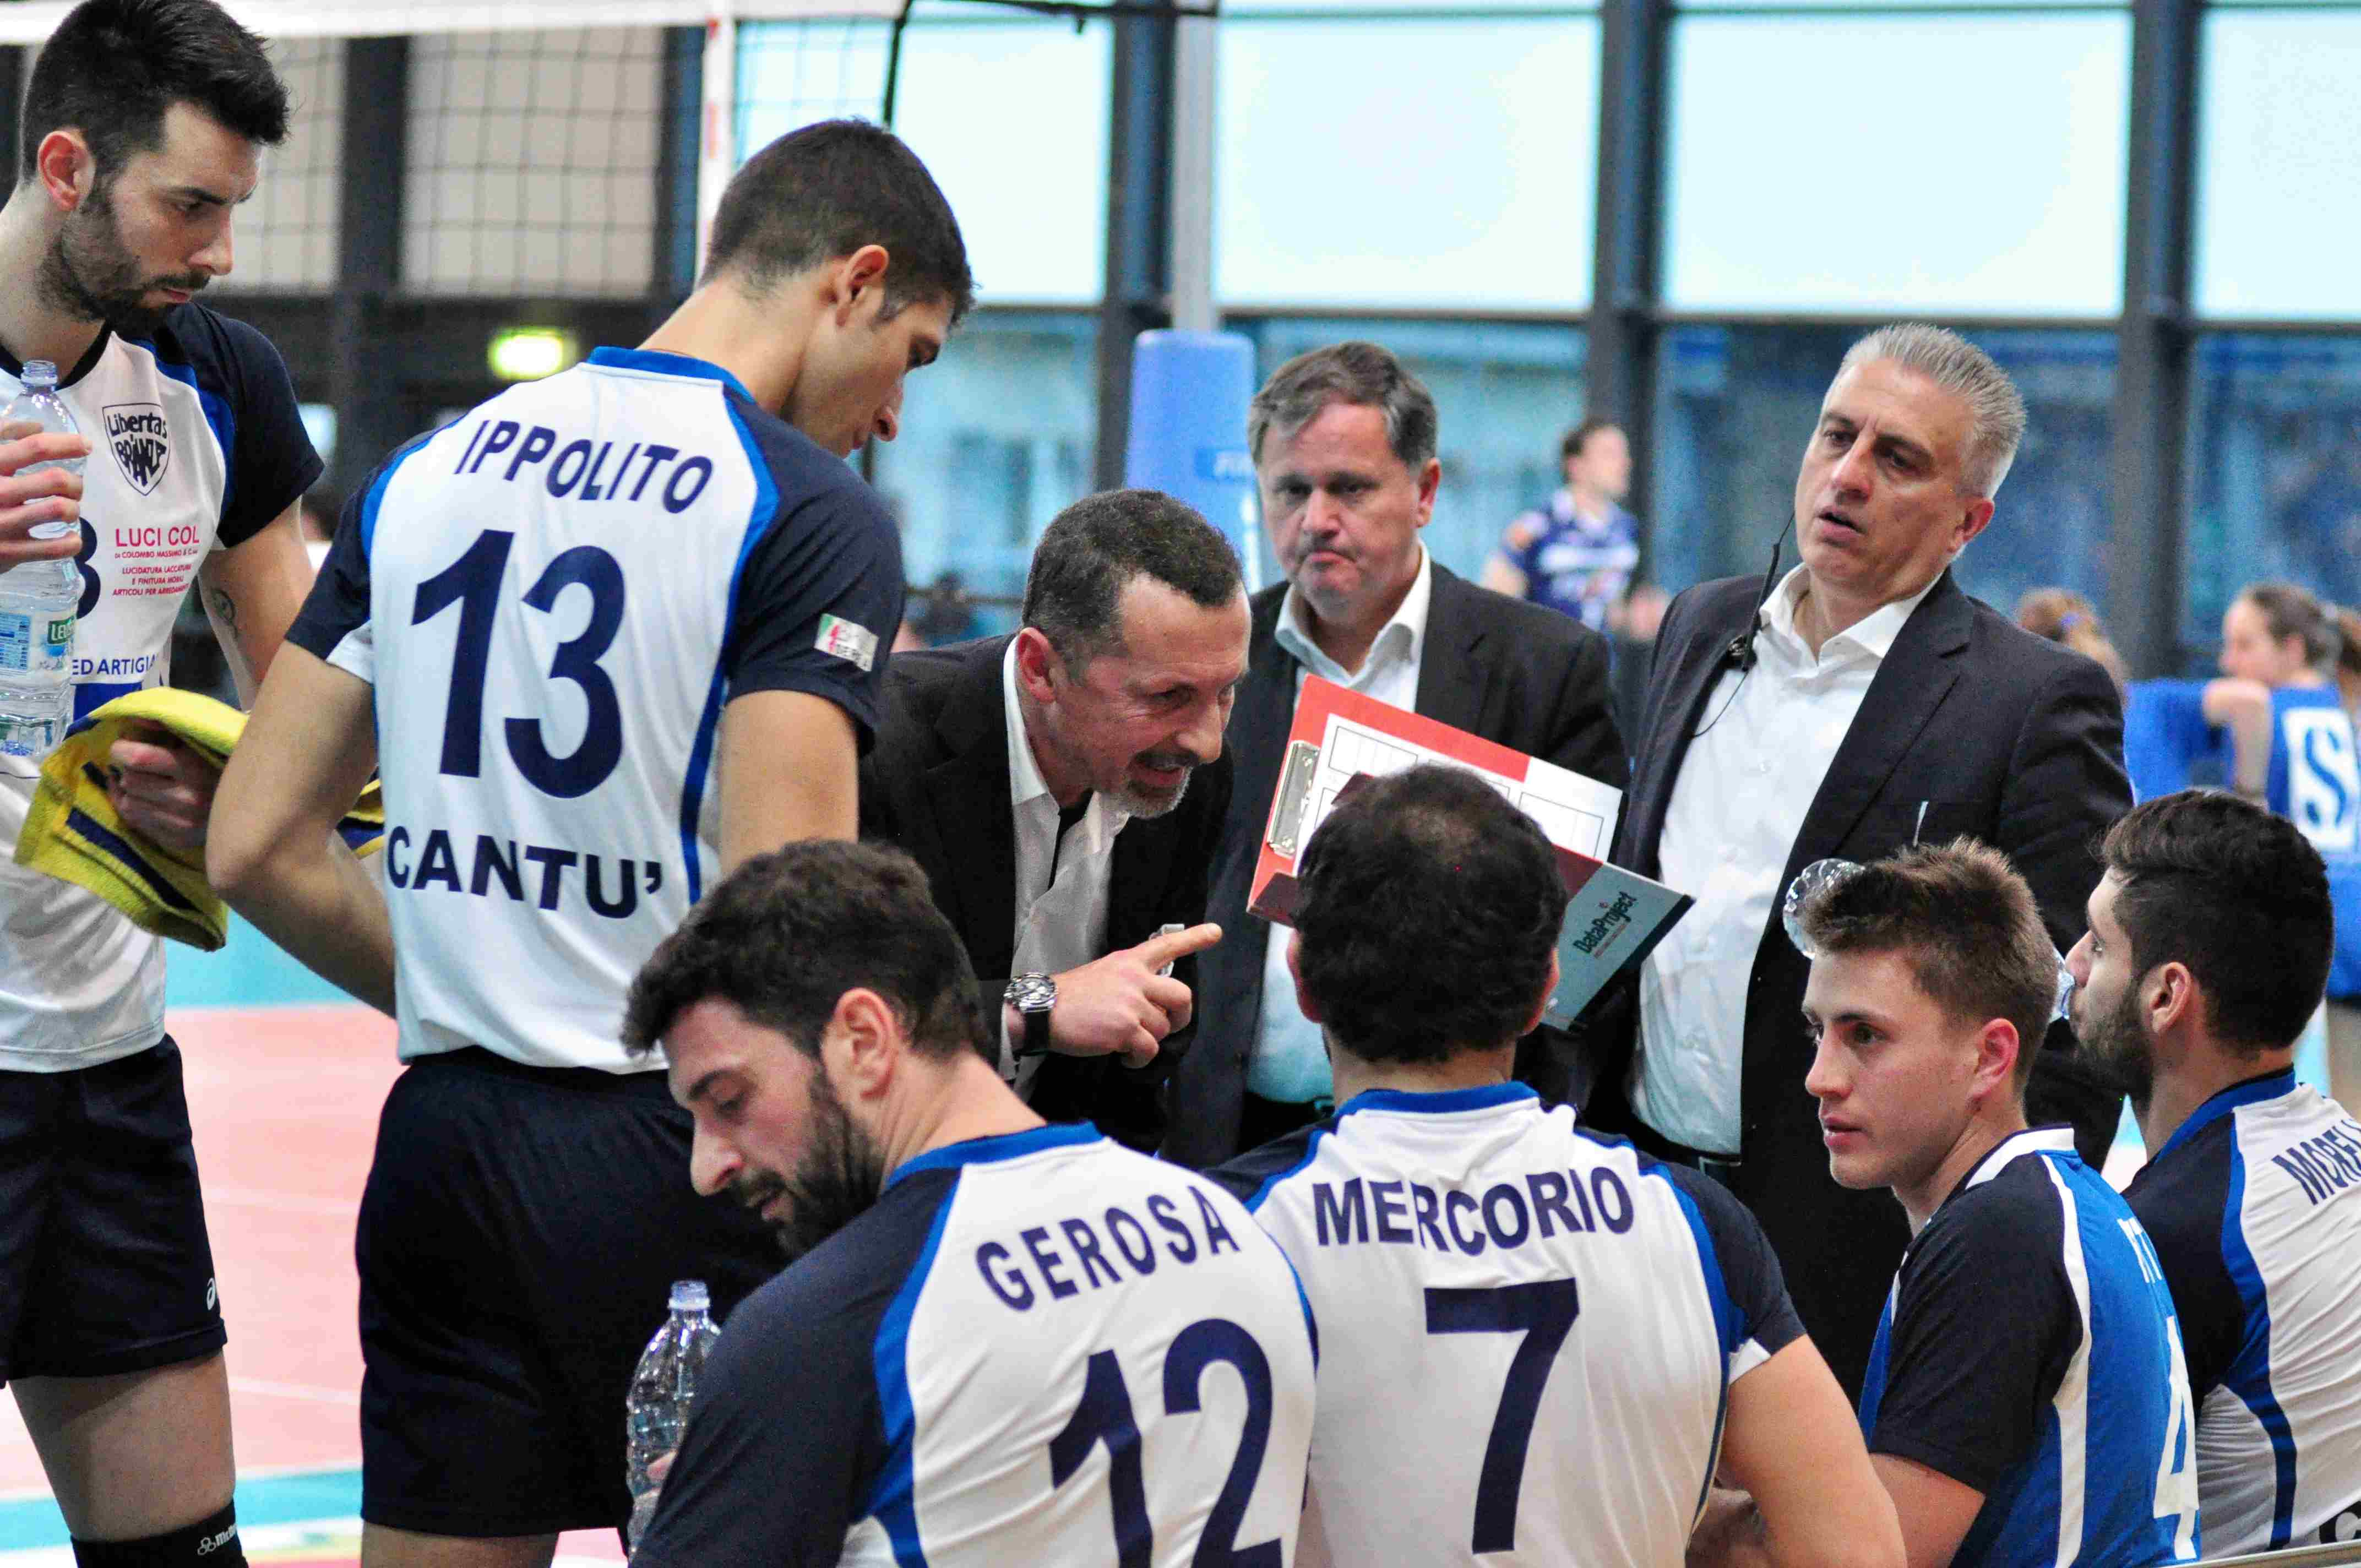 Calendario Volley Maschile.Volley Maschile Serie A2 Novita Libertas Cantu Tra